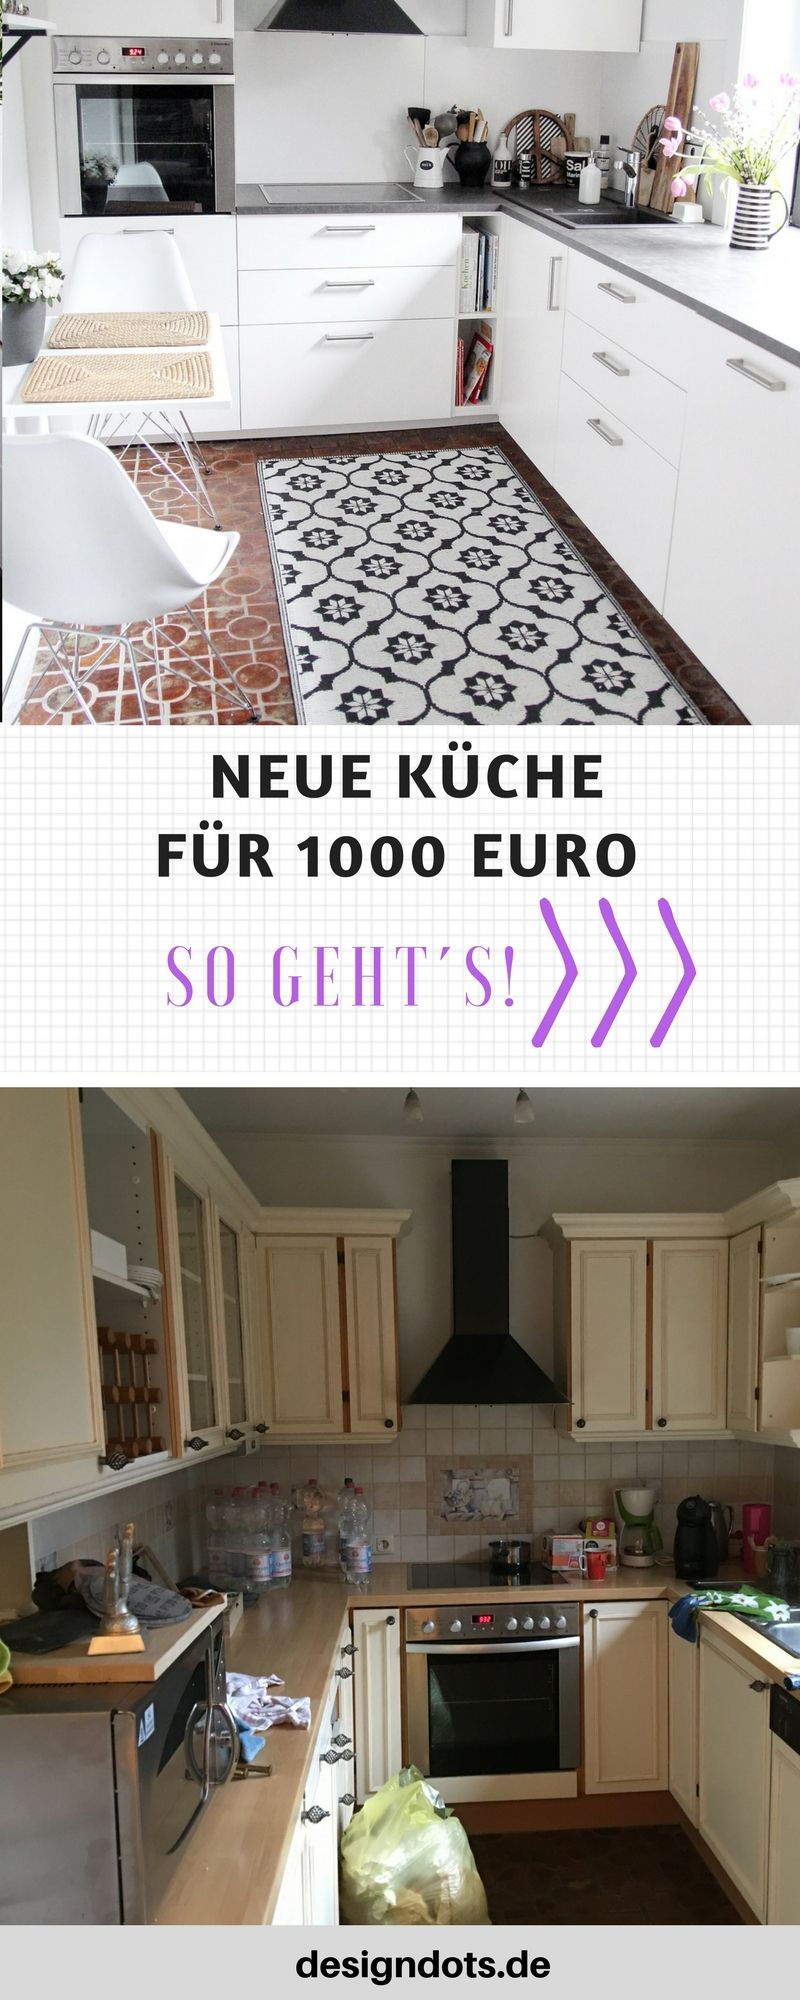 neue k che f r 1000 euro pinterest treppe renovieren renovierte k che und wohnung renovieren. Black Bedroom Furniture Sets. Home Design Ideas